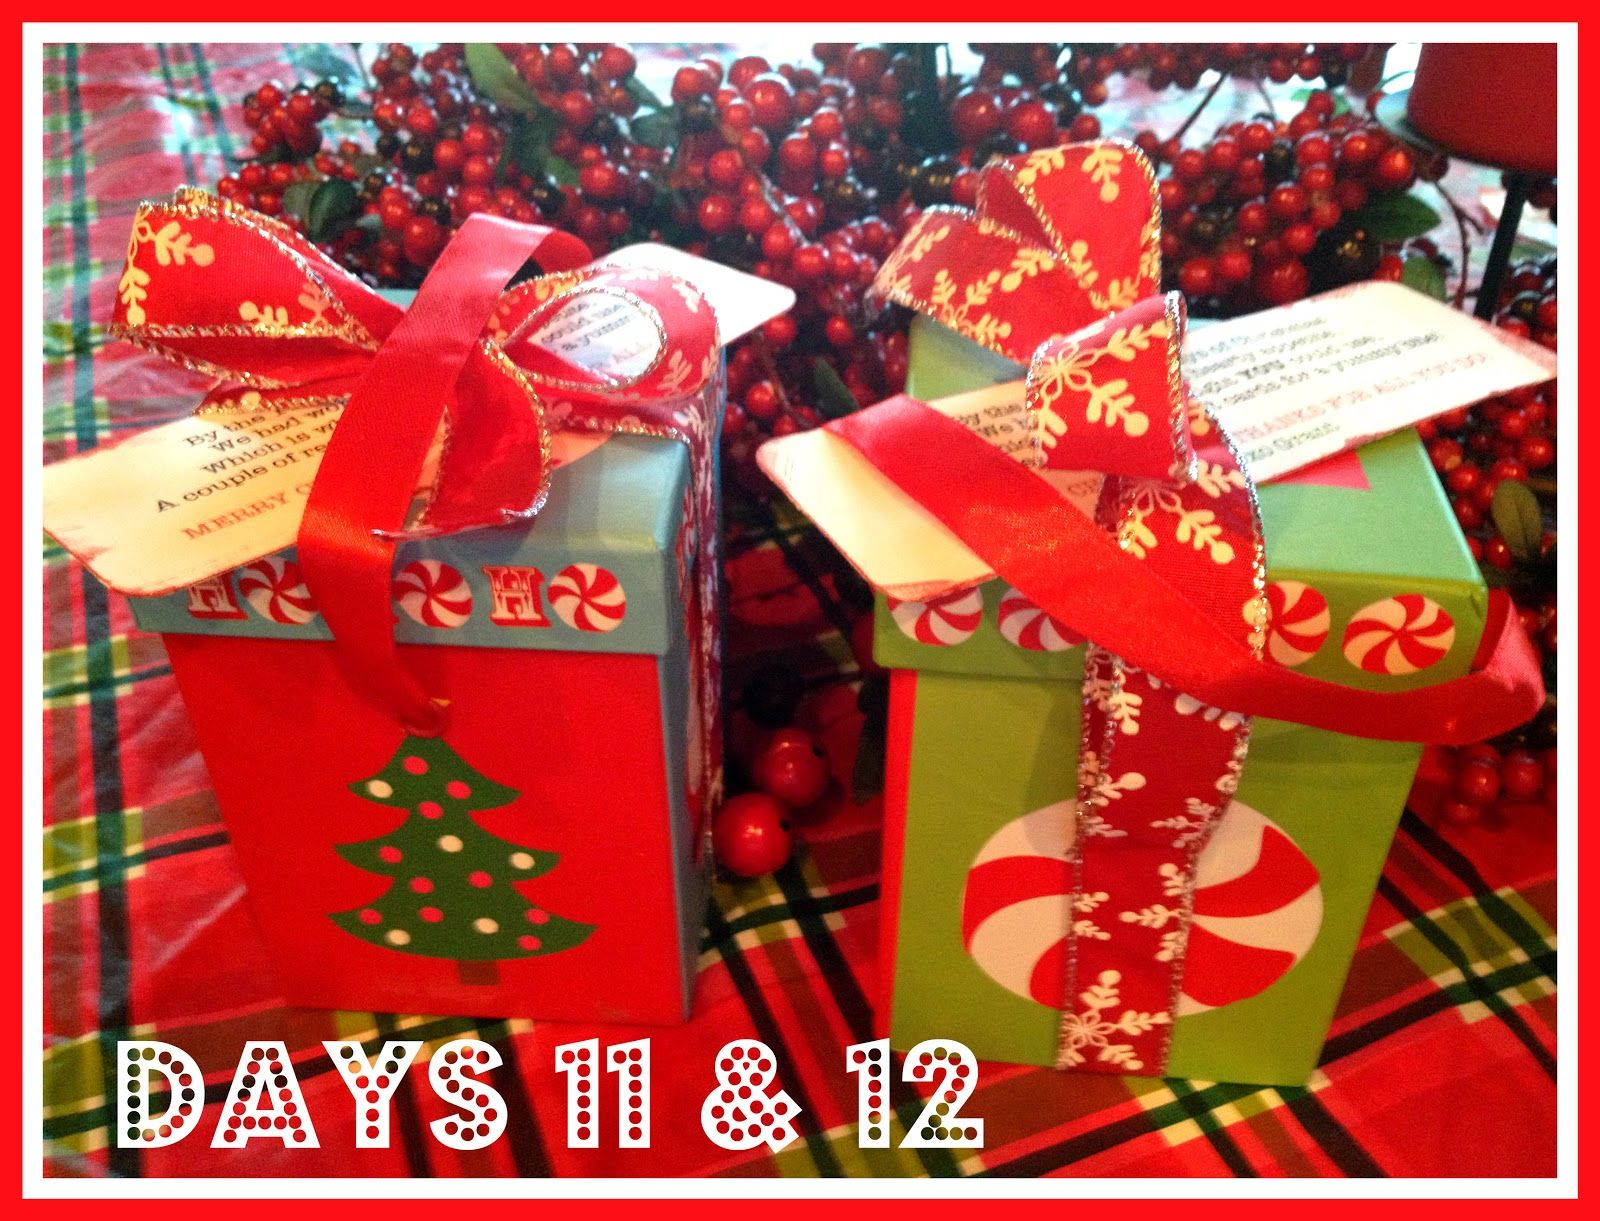 6th grade christmas party ideas - Marci Coombs Days 11 12 Of The 12 Days Of Christmas